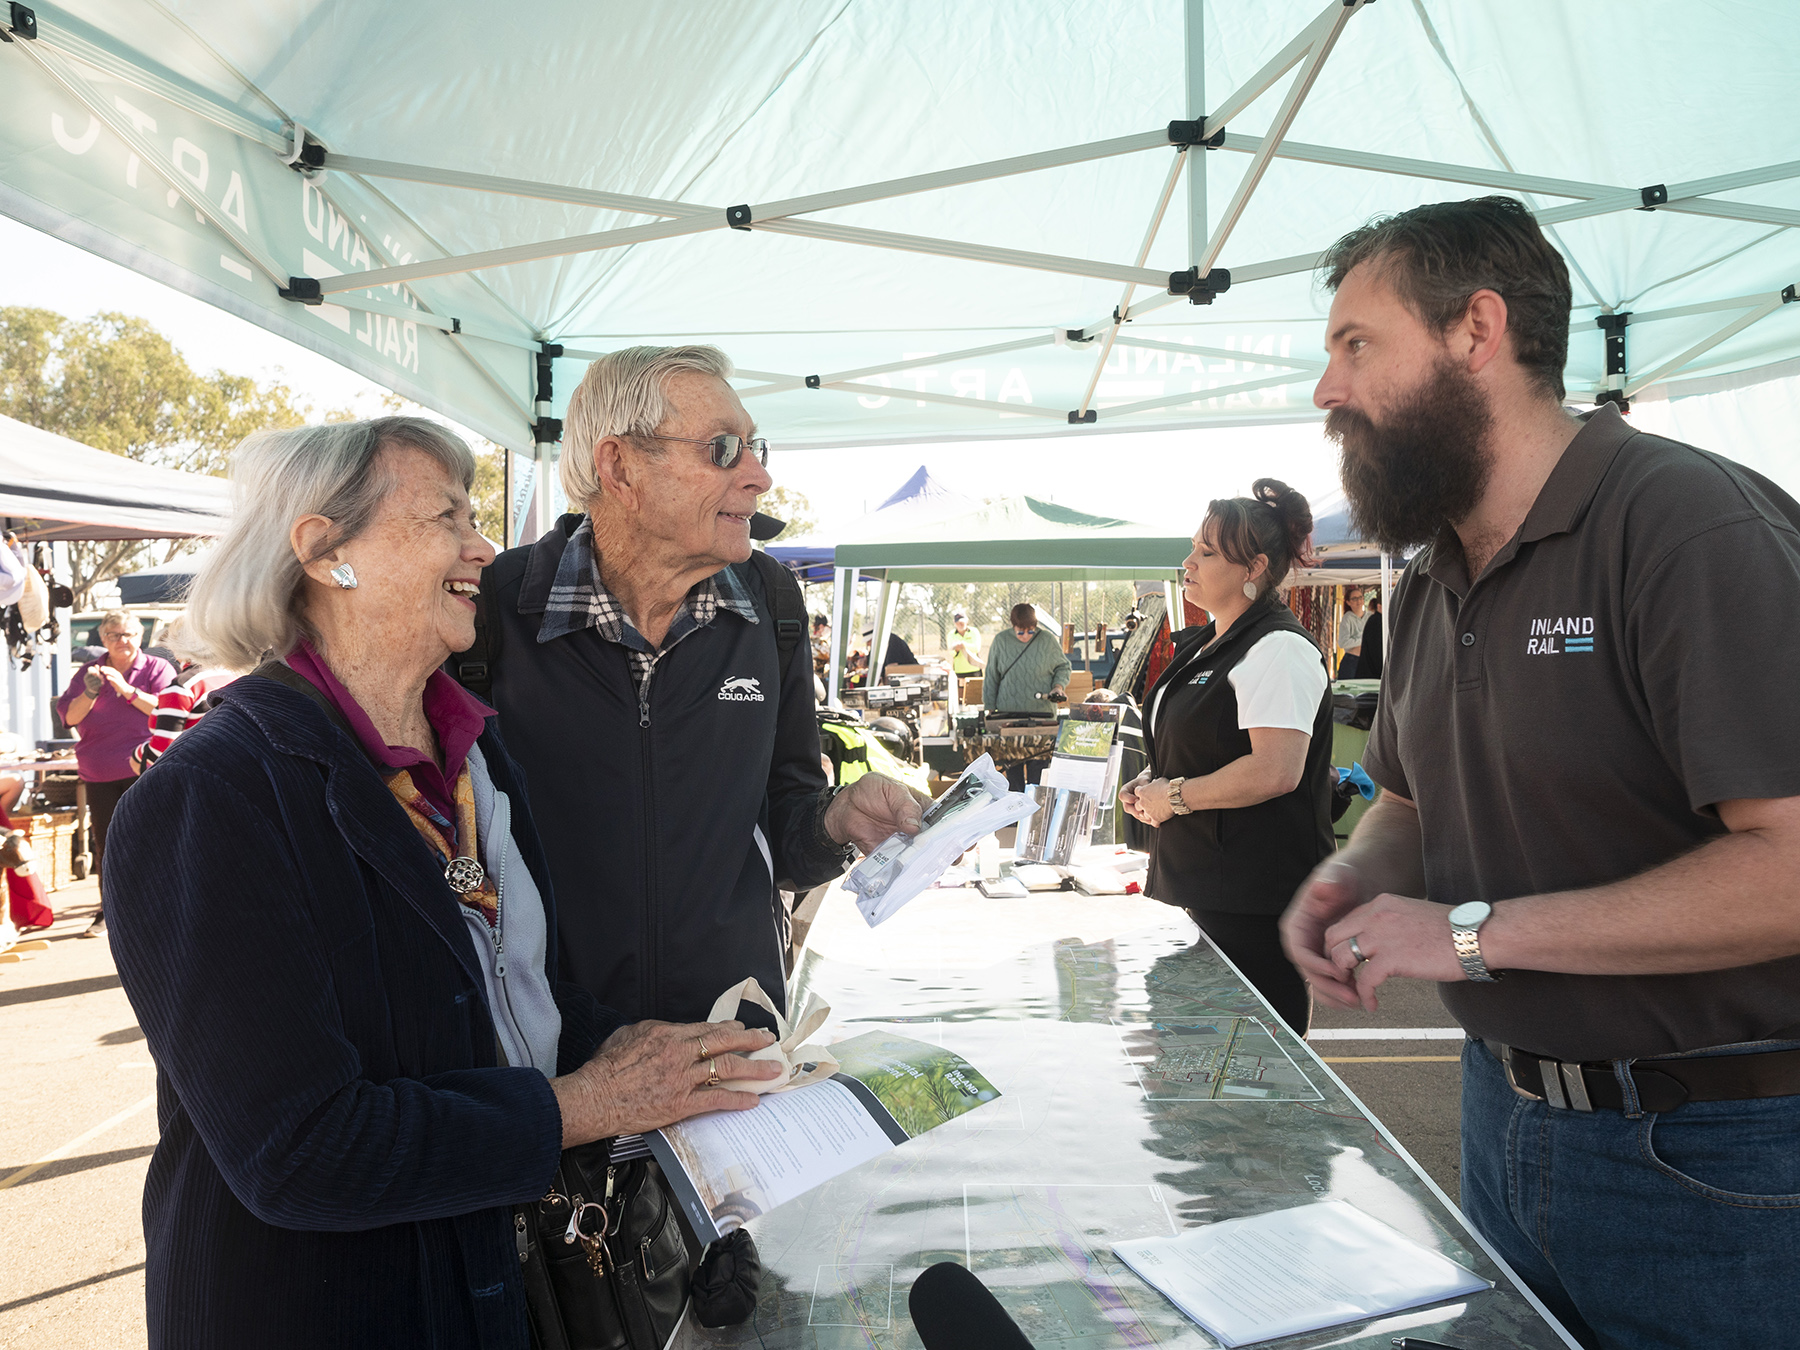 ARTC community drop-in info session at the Laidley RSL market day.